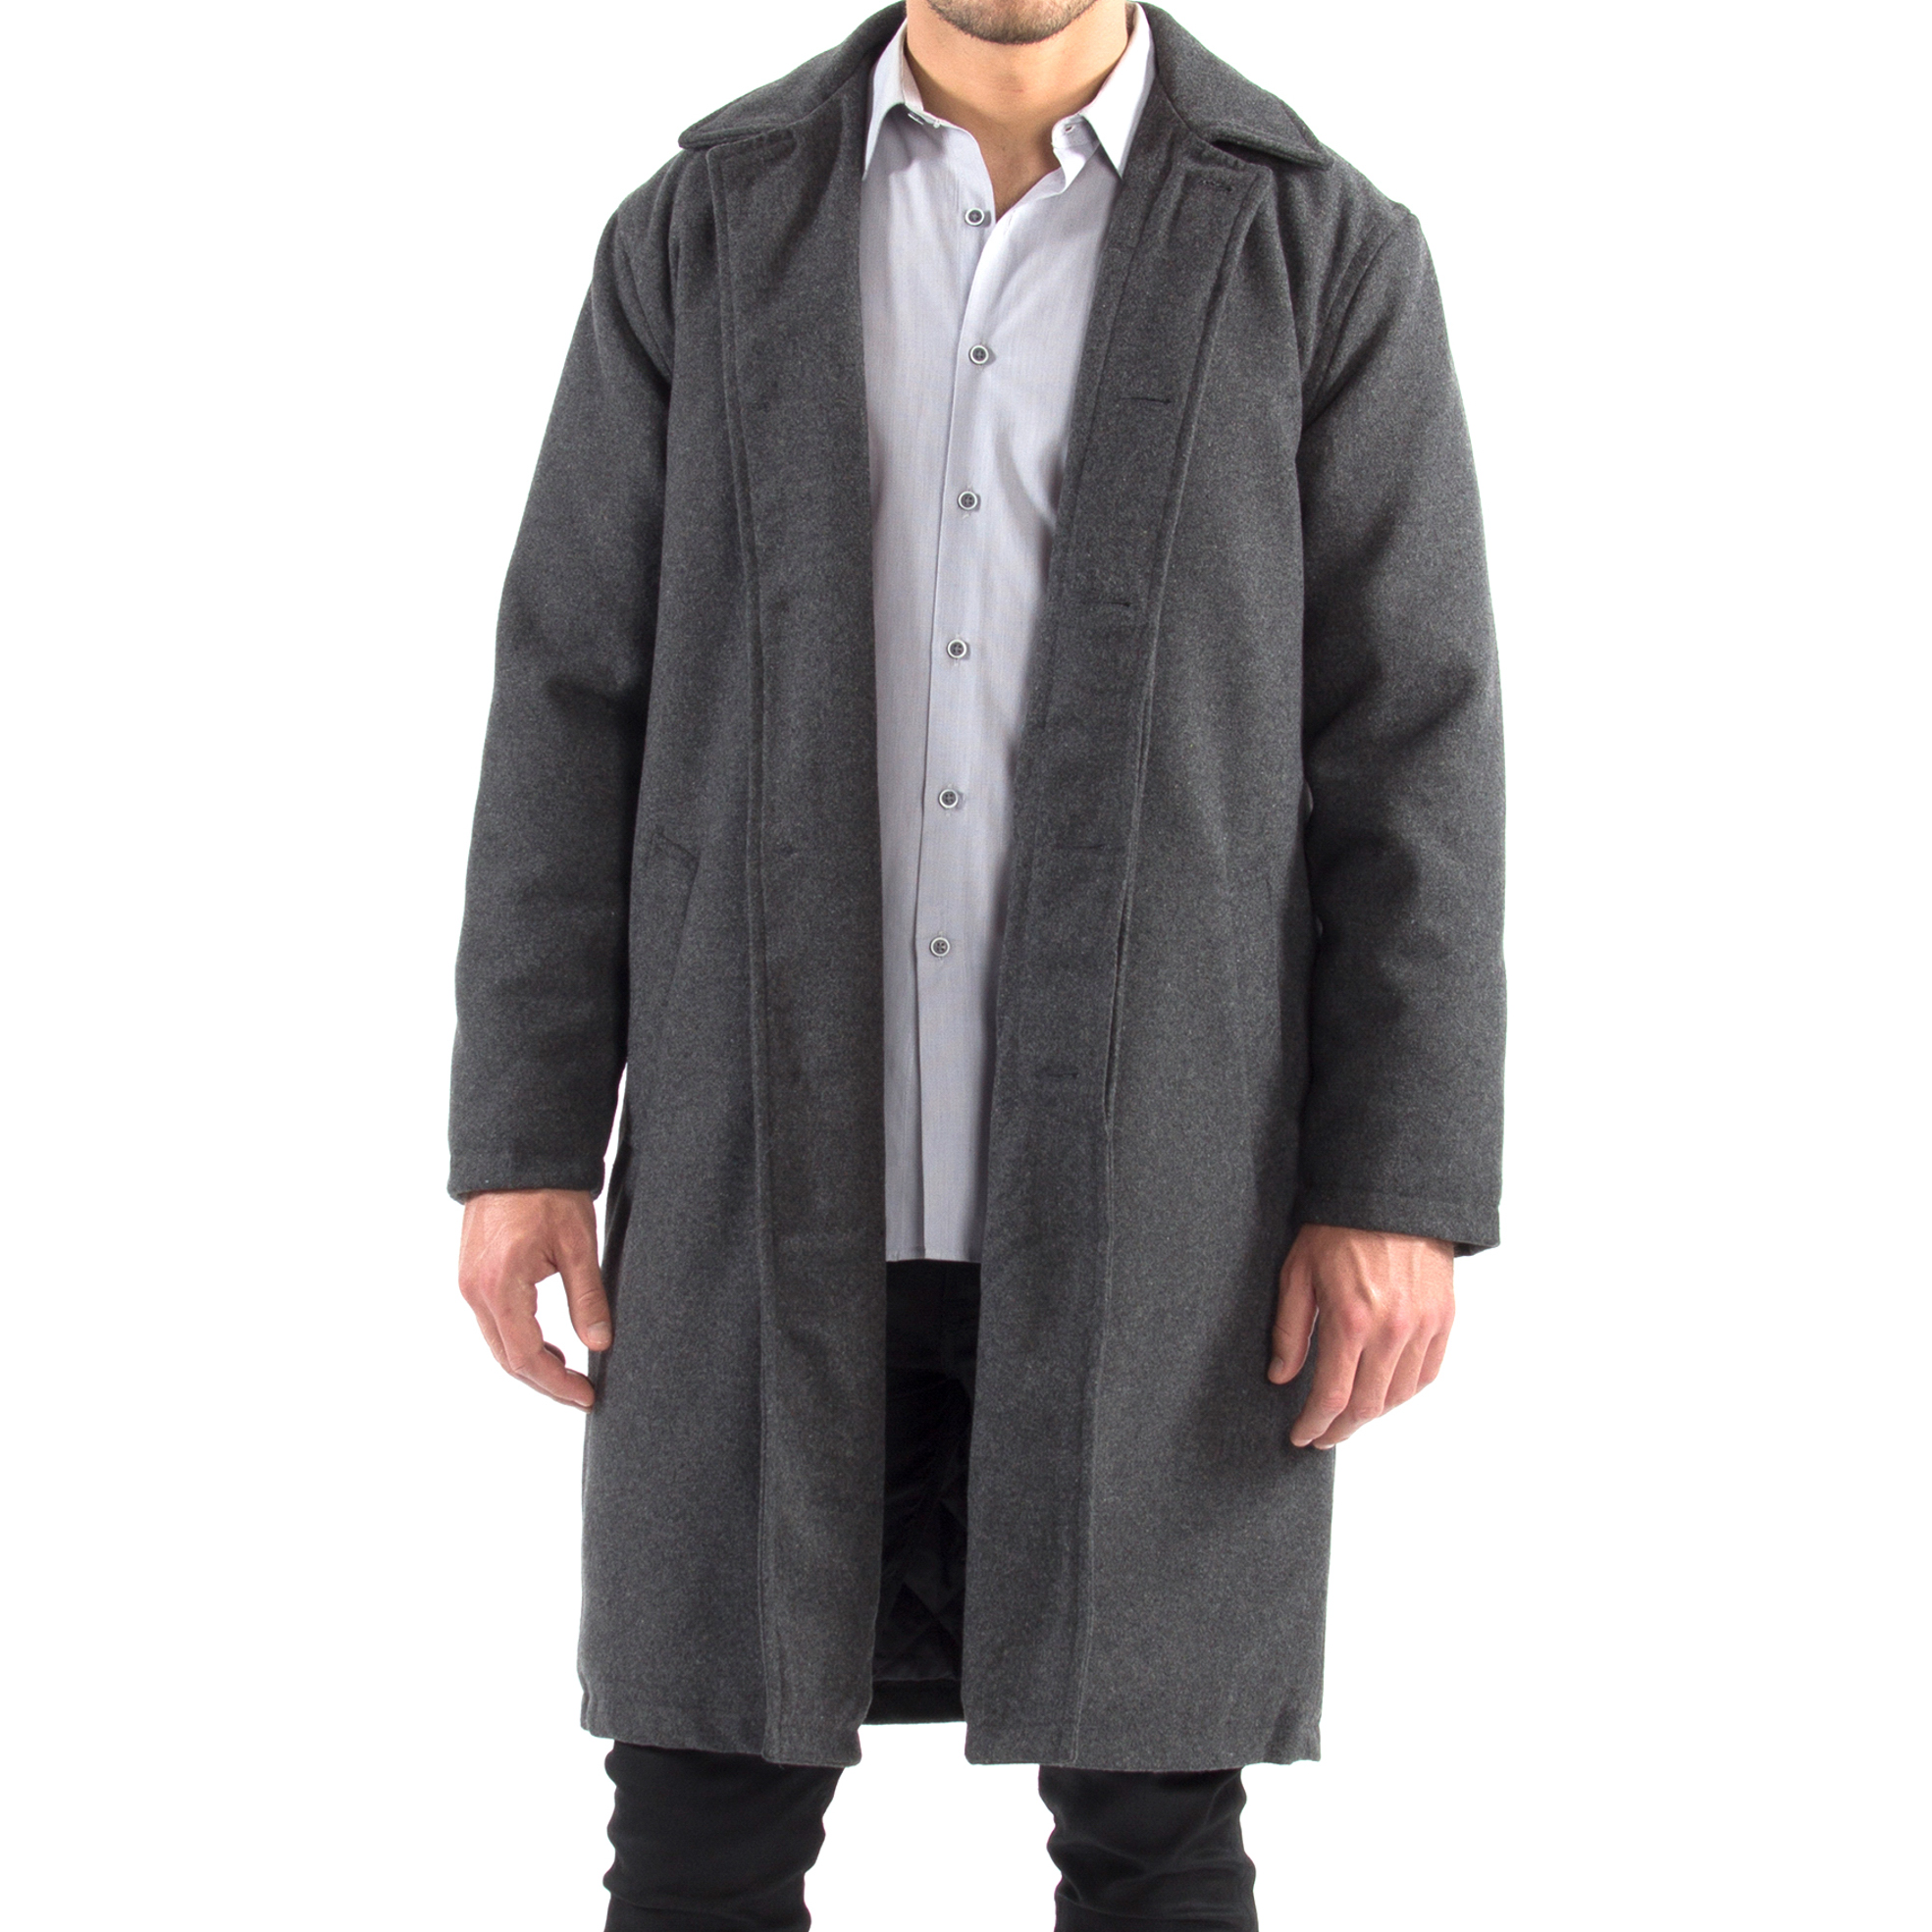 Alpine-Swiss-Mens-Zach-Knee-Length-Jacket-Top-Coat-Trench-Wool-Blend-Overcoat thumbnail 35